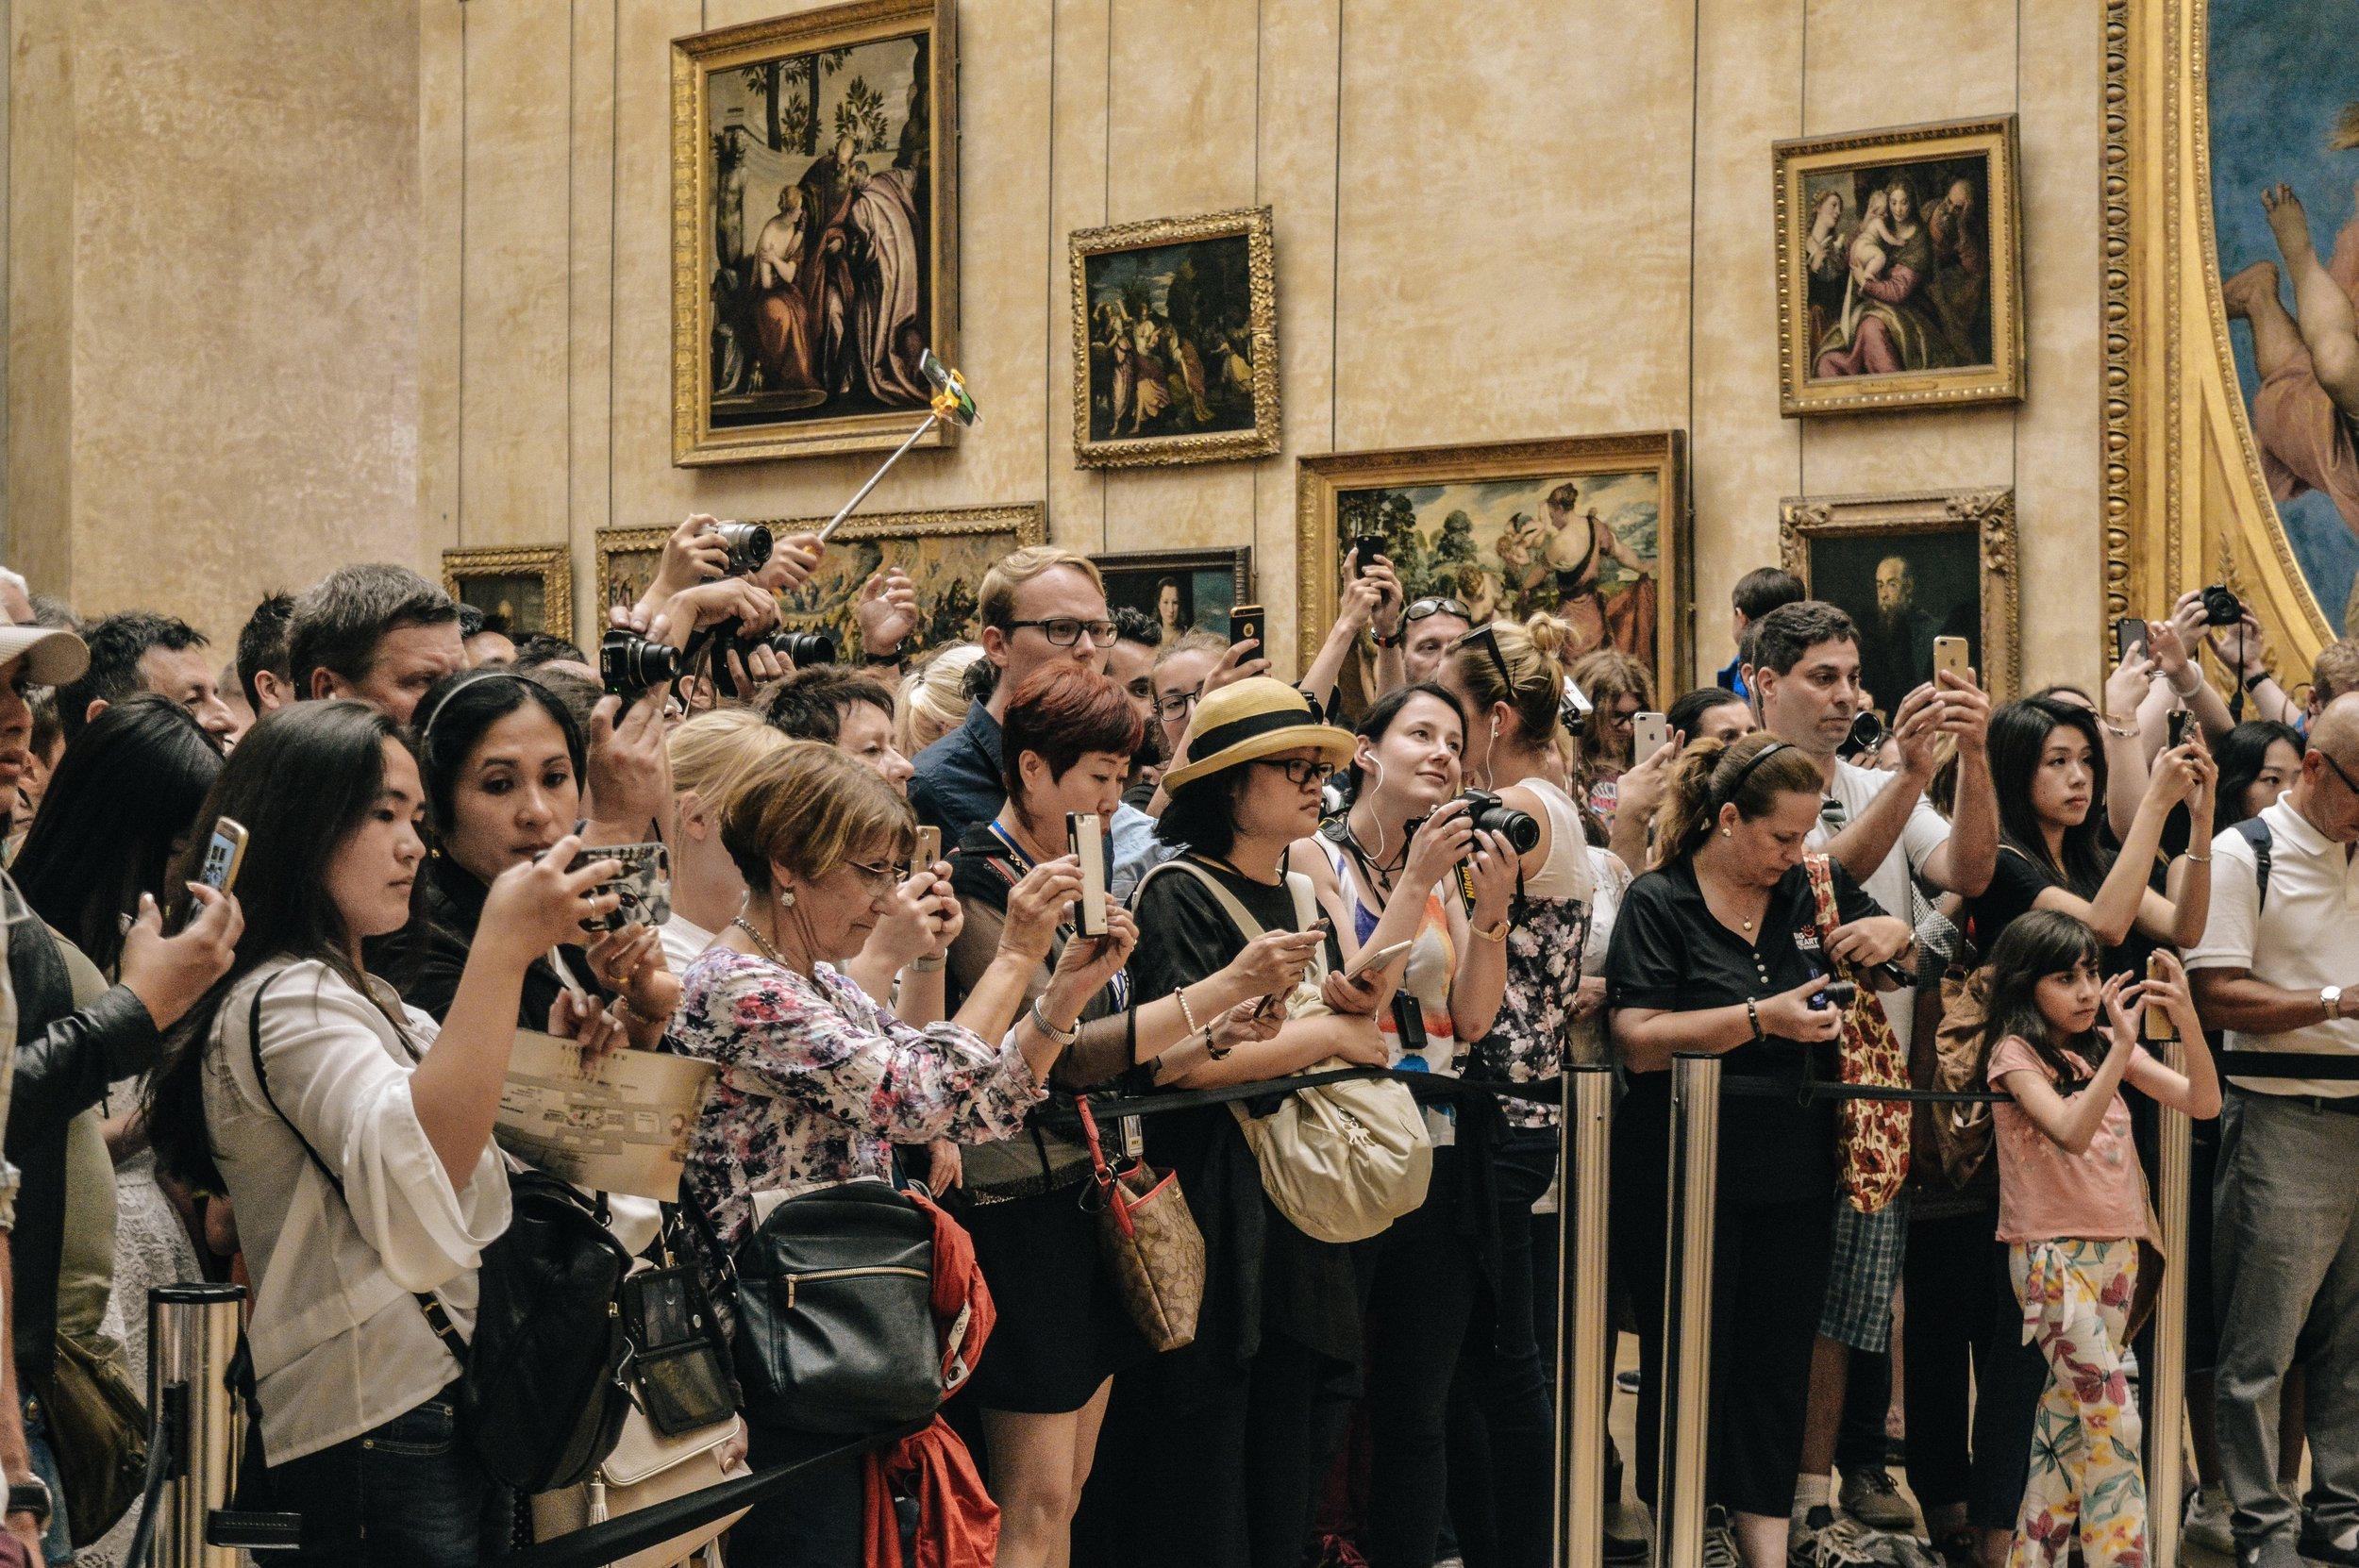 You have to really want to visit the Louvre if you're going to fight these crowds.